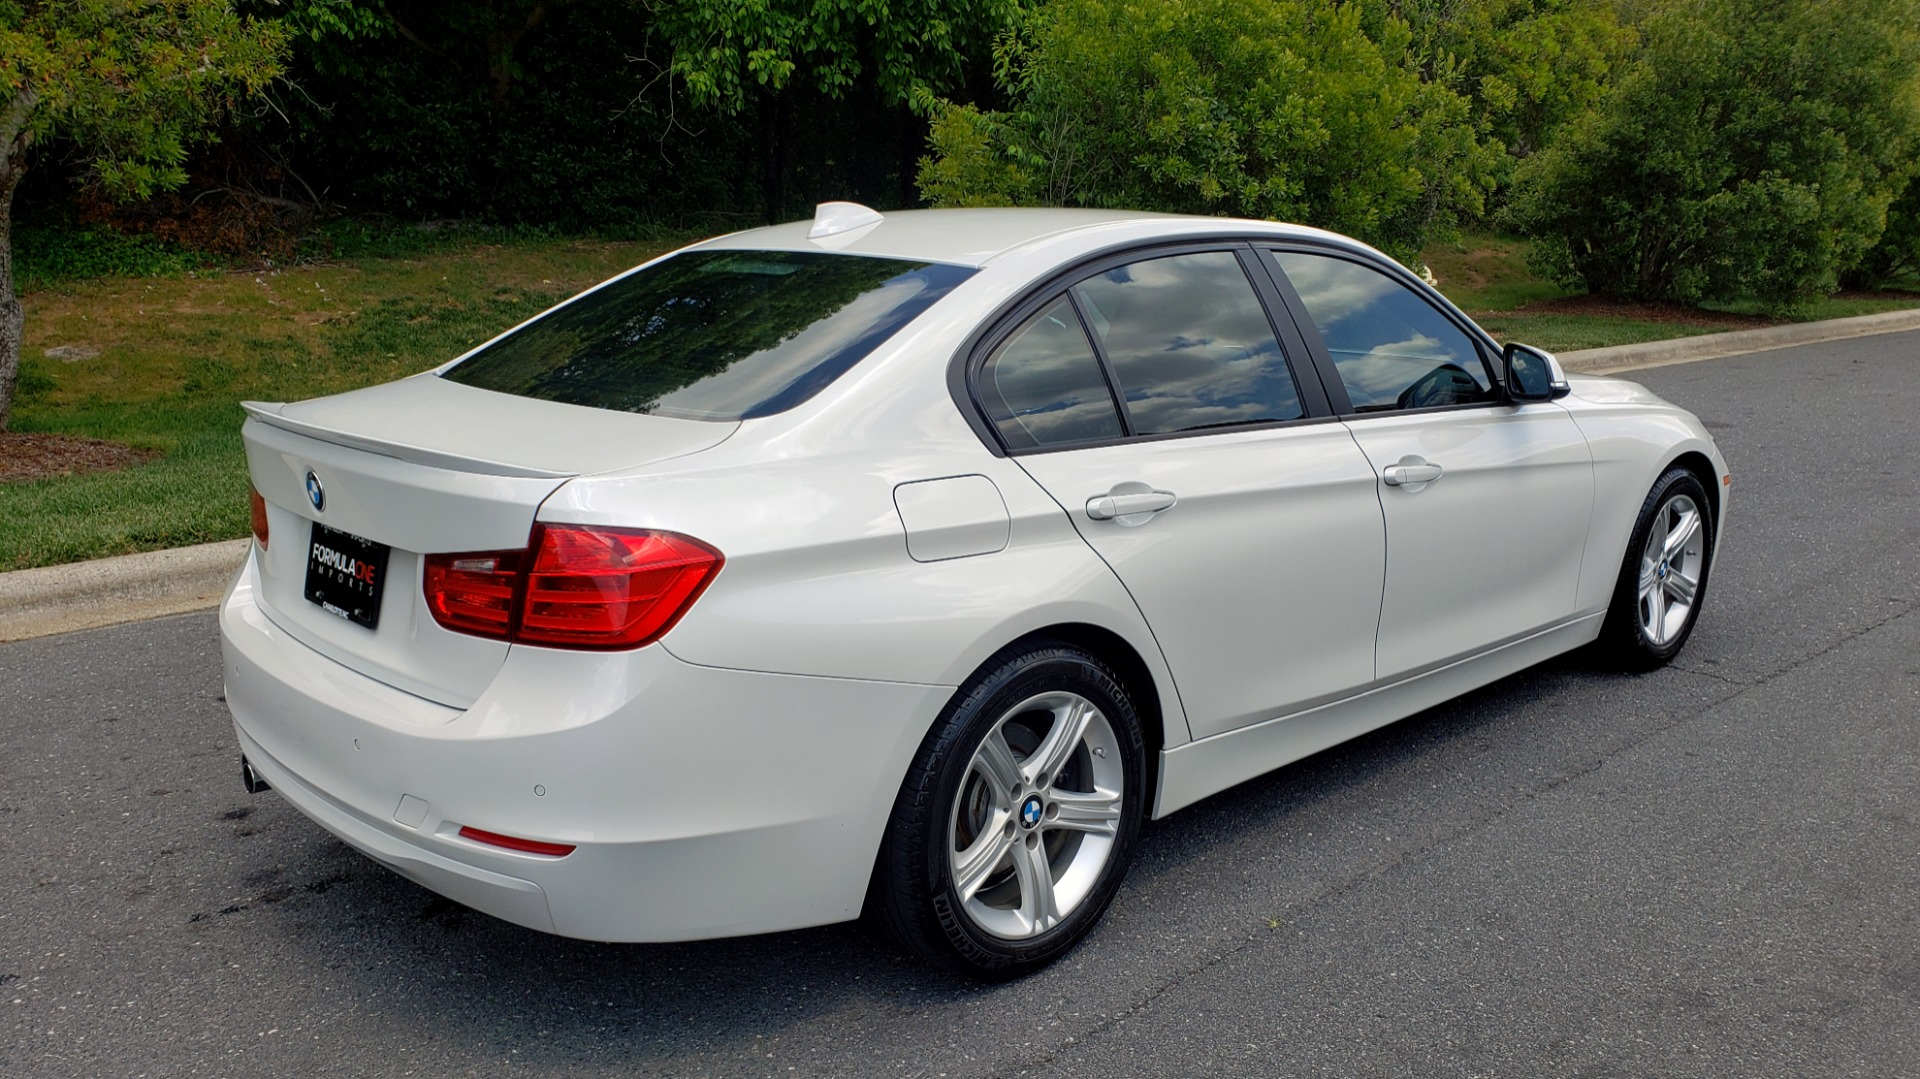 Used 2015 BMW 3 SERIES 328I PREMIUM / NAV / SUNROOF / HTD STS / DRIVER ASST / REARVIEW for sale Sold at Formula Imports in Charlotte NC 28227 7